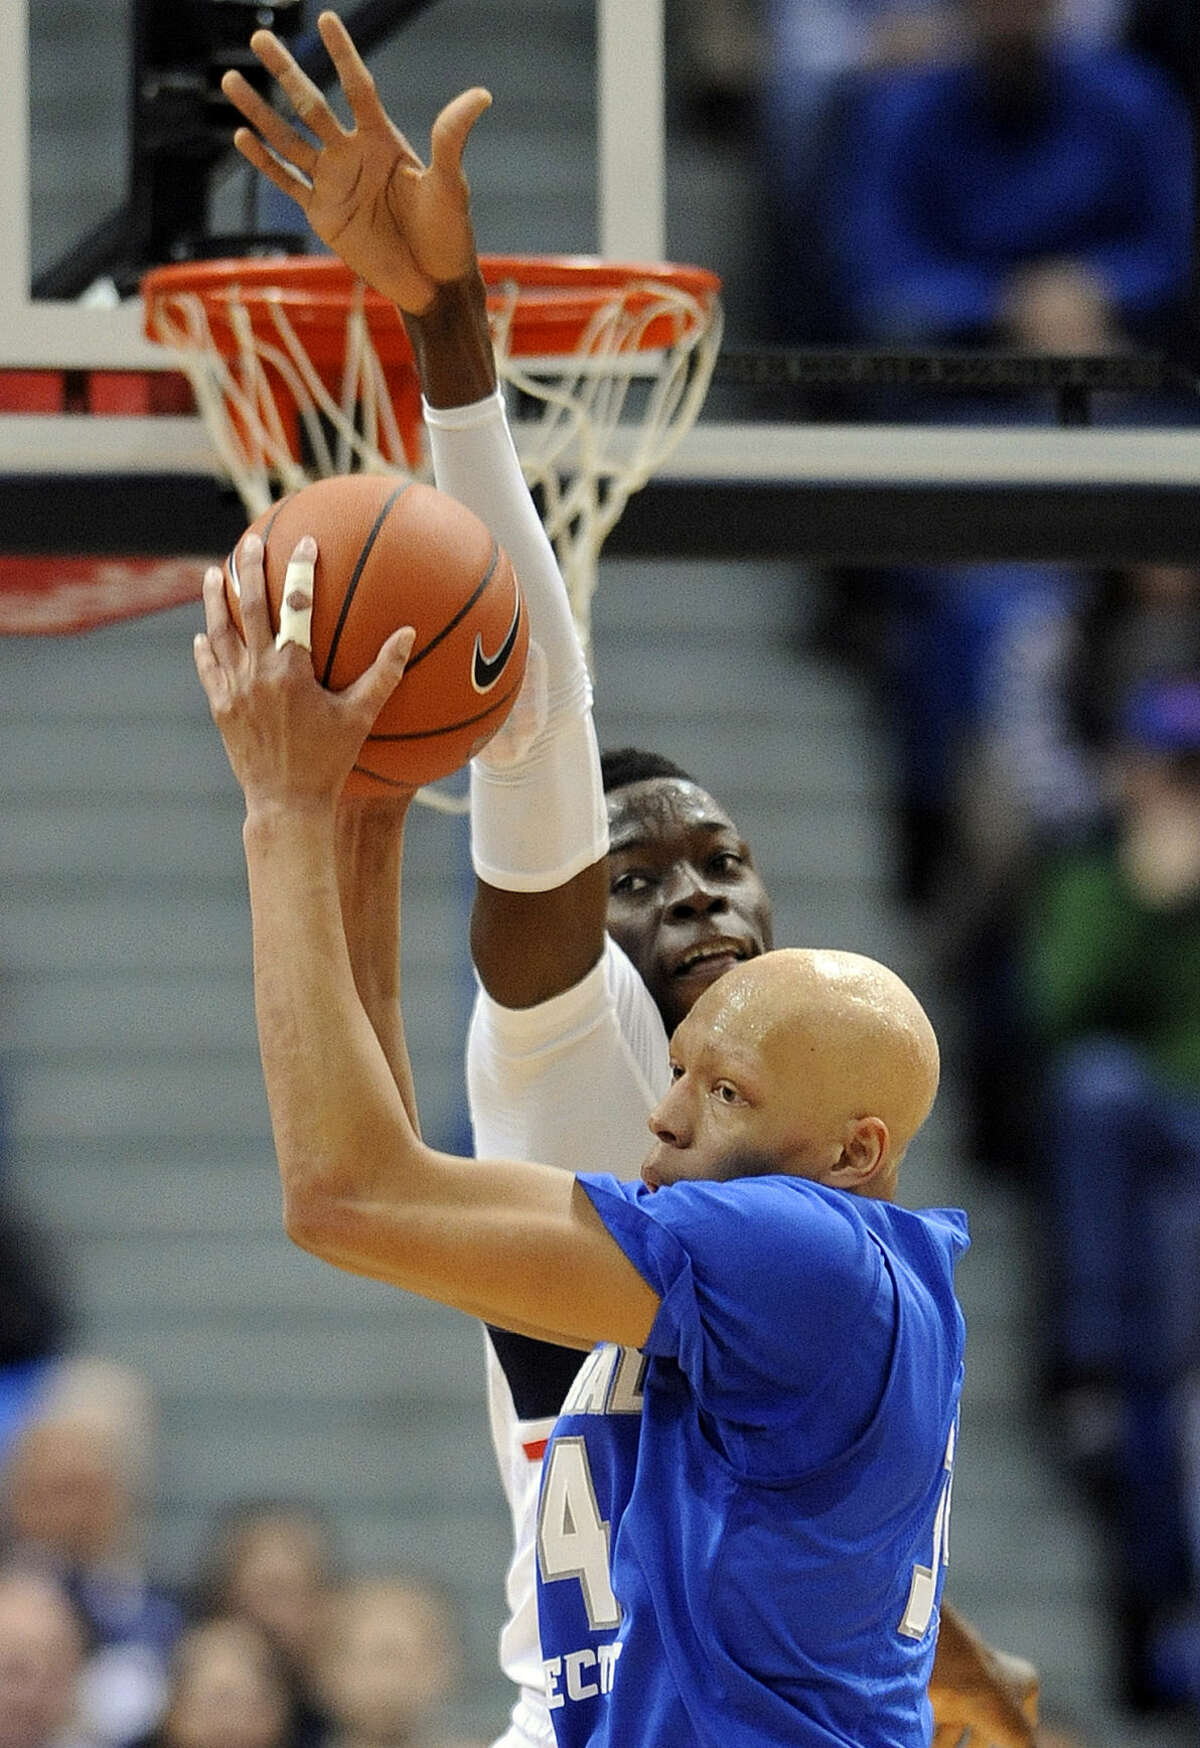 Central Connecticut State's Brandon Peel, forground, grabs a rebound from Connecticut's Amida Brimah (35) during the first half of an NCAA college basketball game in Hartford, Conn., on Sunday, Dec. 28, 2014. (AP Photo/Fred Beckham)